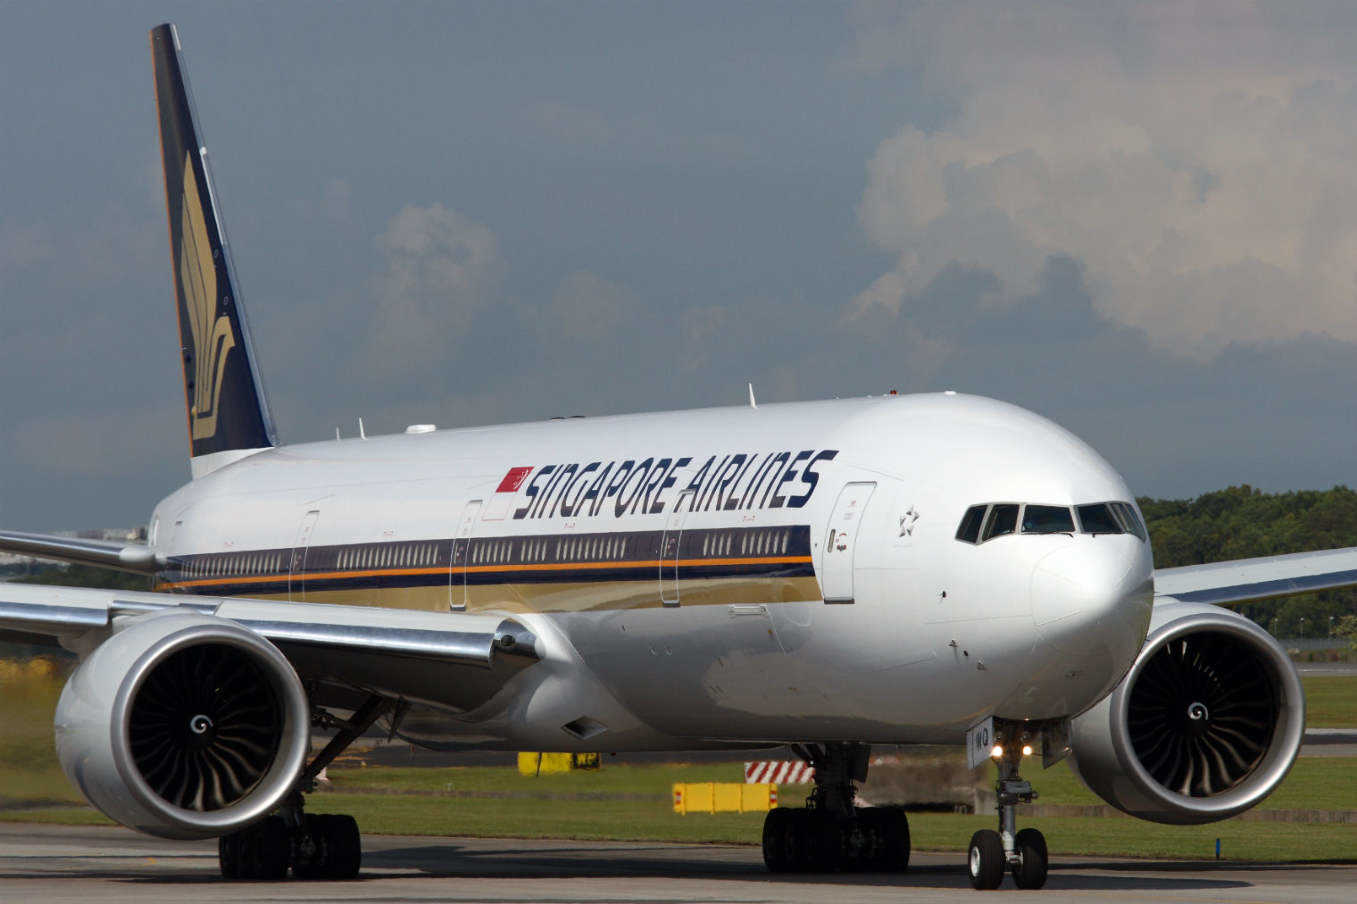 Singapore Airlines and Malaysia Airlines Berhad work on a strategic alliance